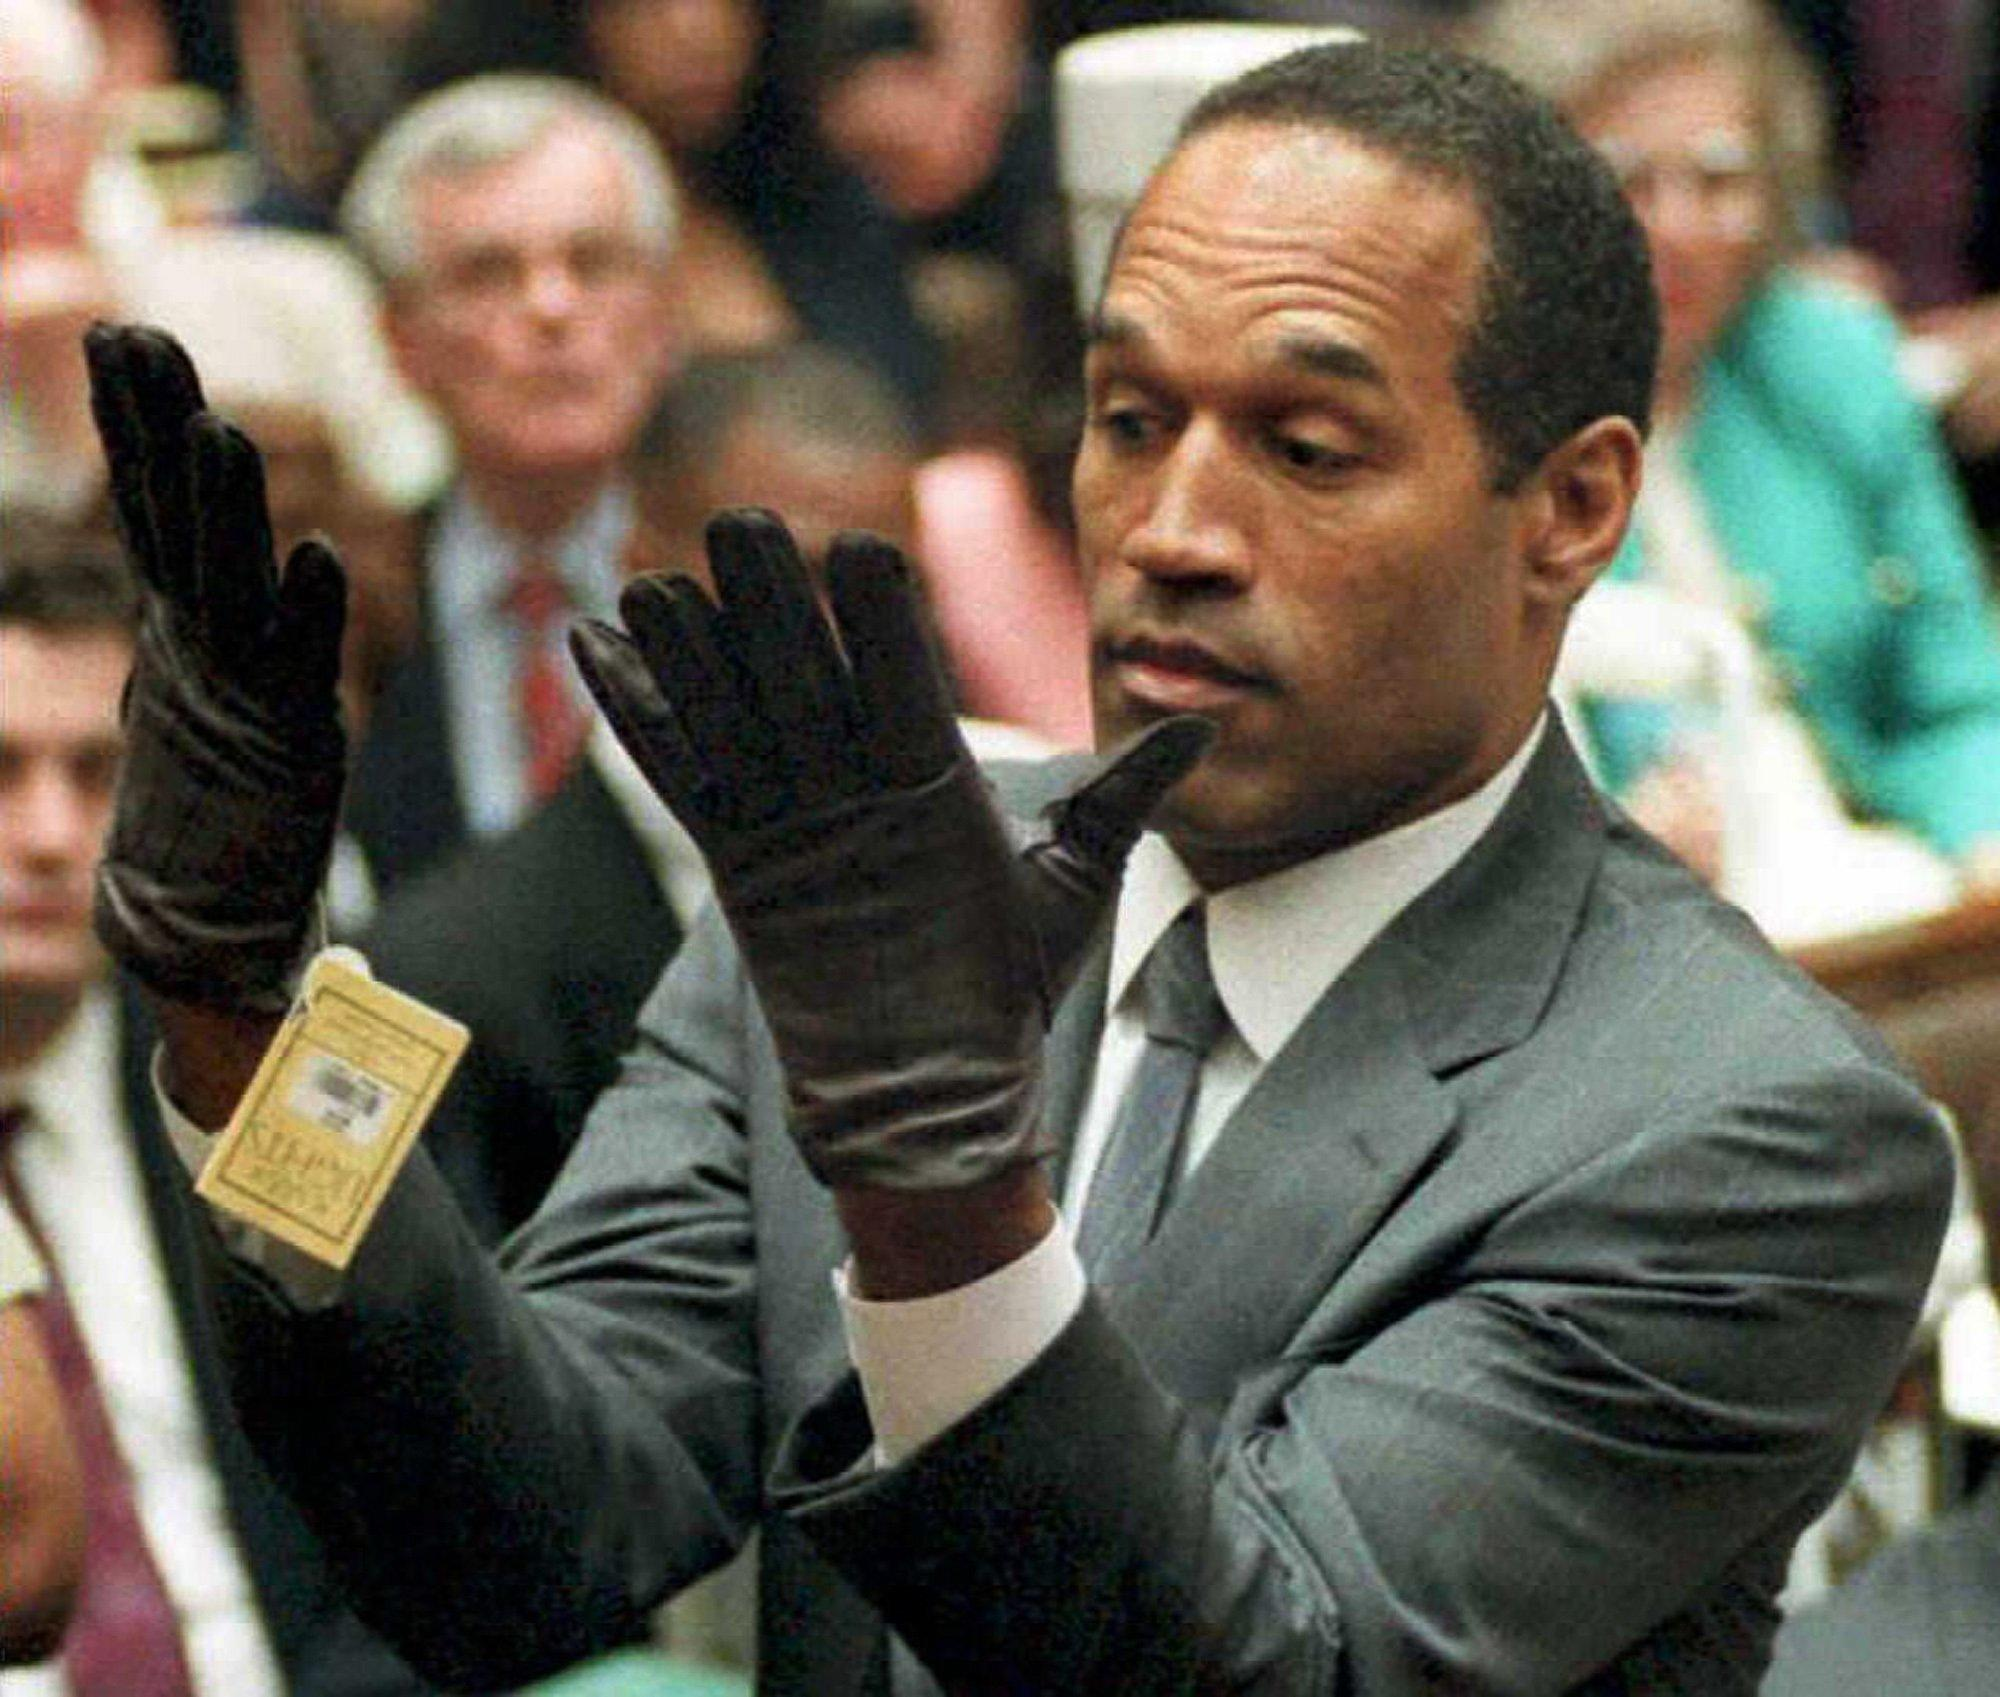 The pivotal moment in the 1995 O.J. Simpson murder trial was when the defendant put on a pair of gloves similar to the bloody ones found at the crime scene.